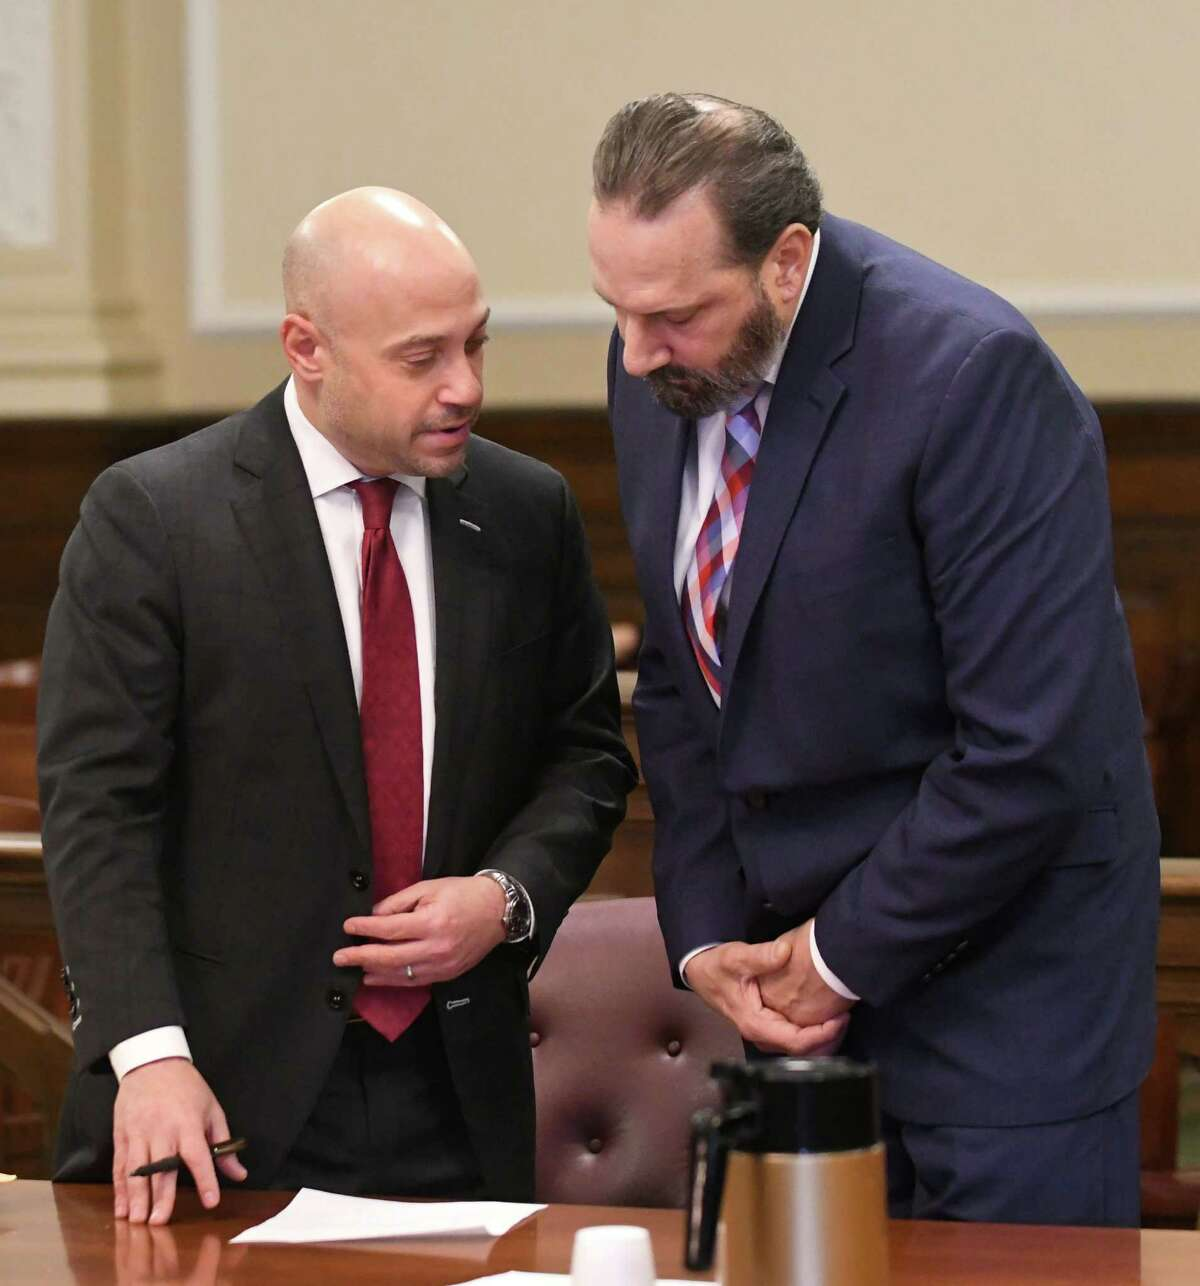 Defense attorney Andrew Safranko left, stands with his client detective John Comitale Jr. as Albany County Court Judge Peter Lynch opens a sealed indictment at the Rensselaer County Court House on Friday, Feb. 2, 2018 in Latham, N.Y. Safranko and another man were indicted in a coverup in a warrantless search. (Lori Van Buren/Times Union)